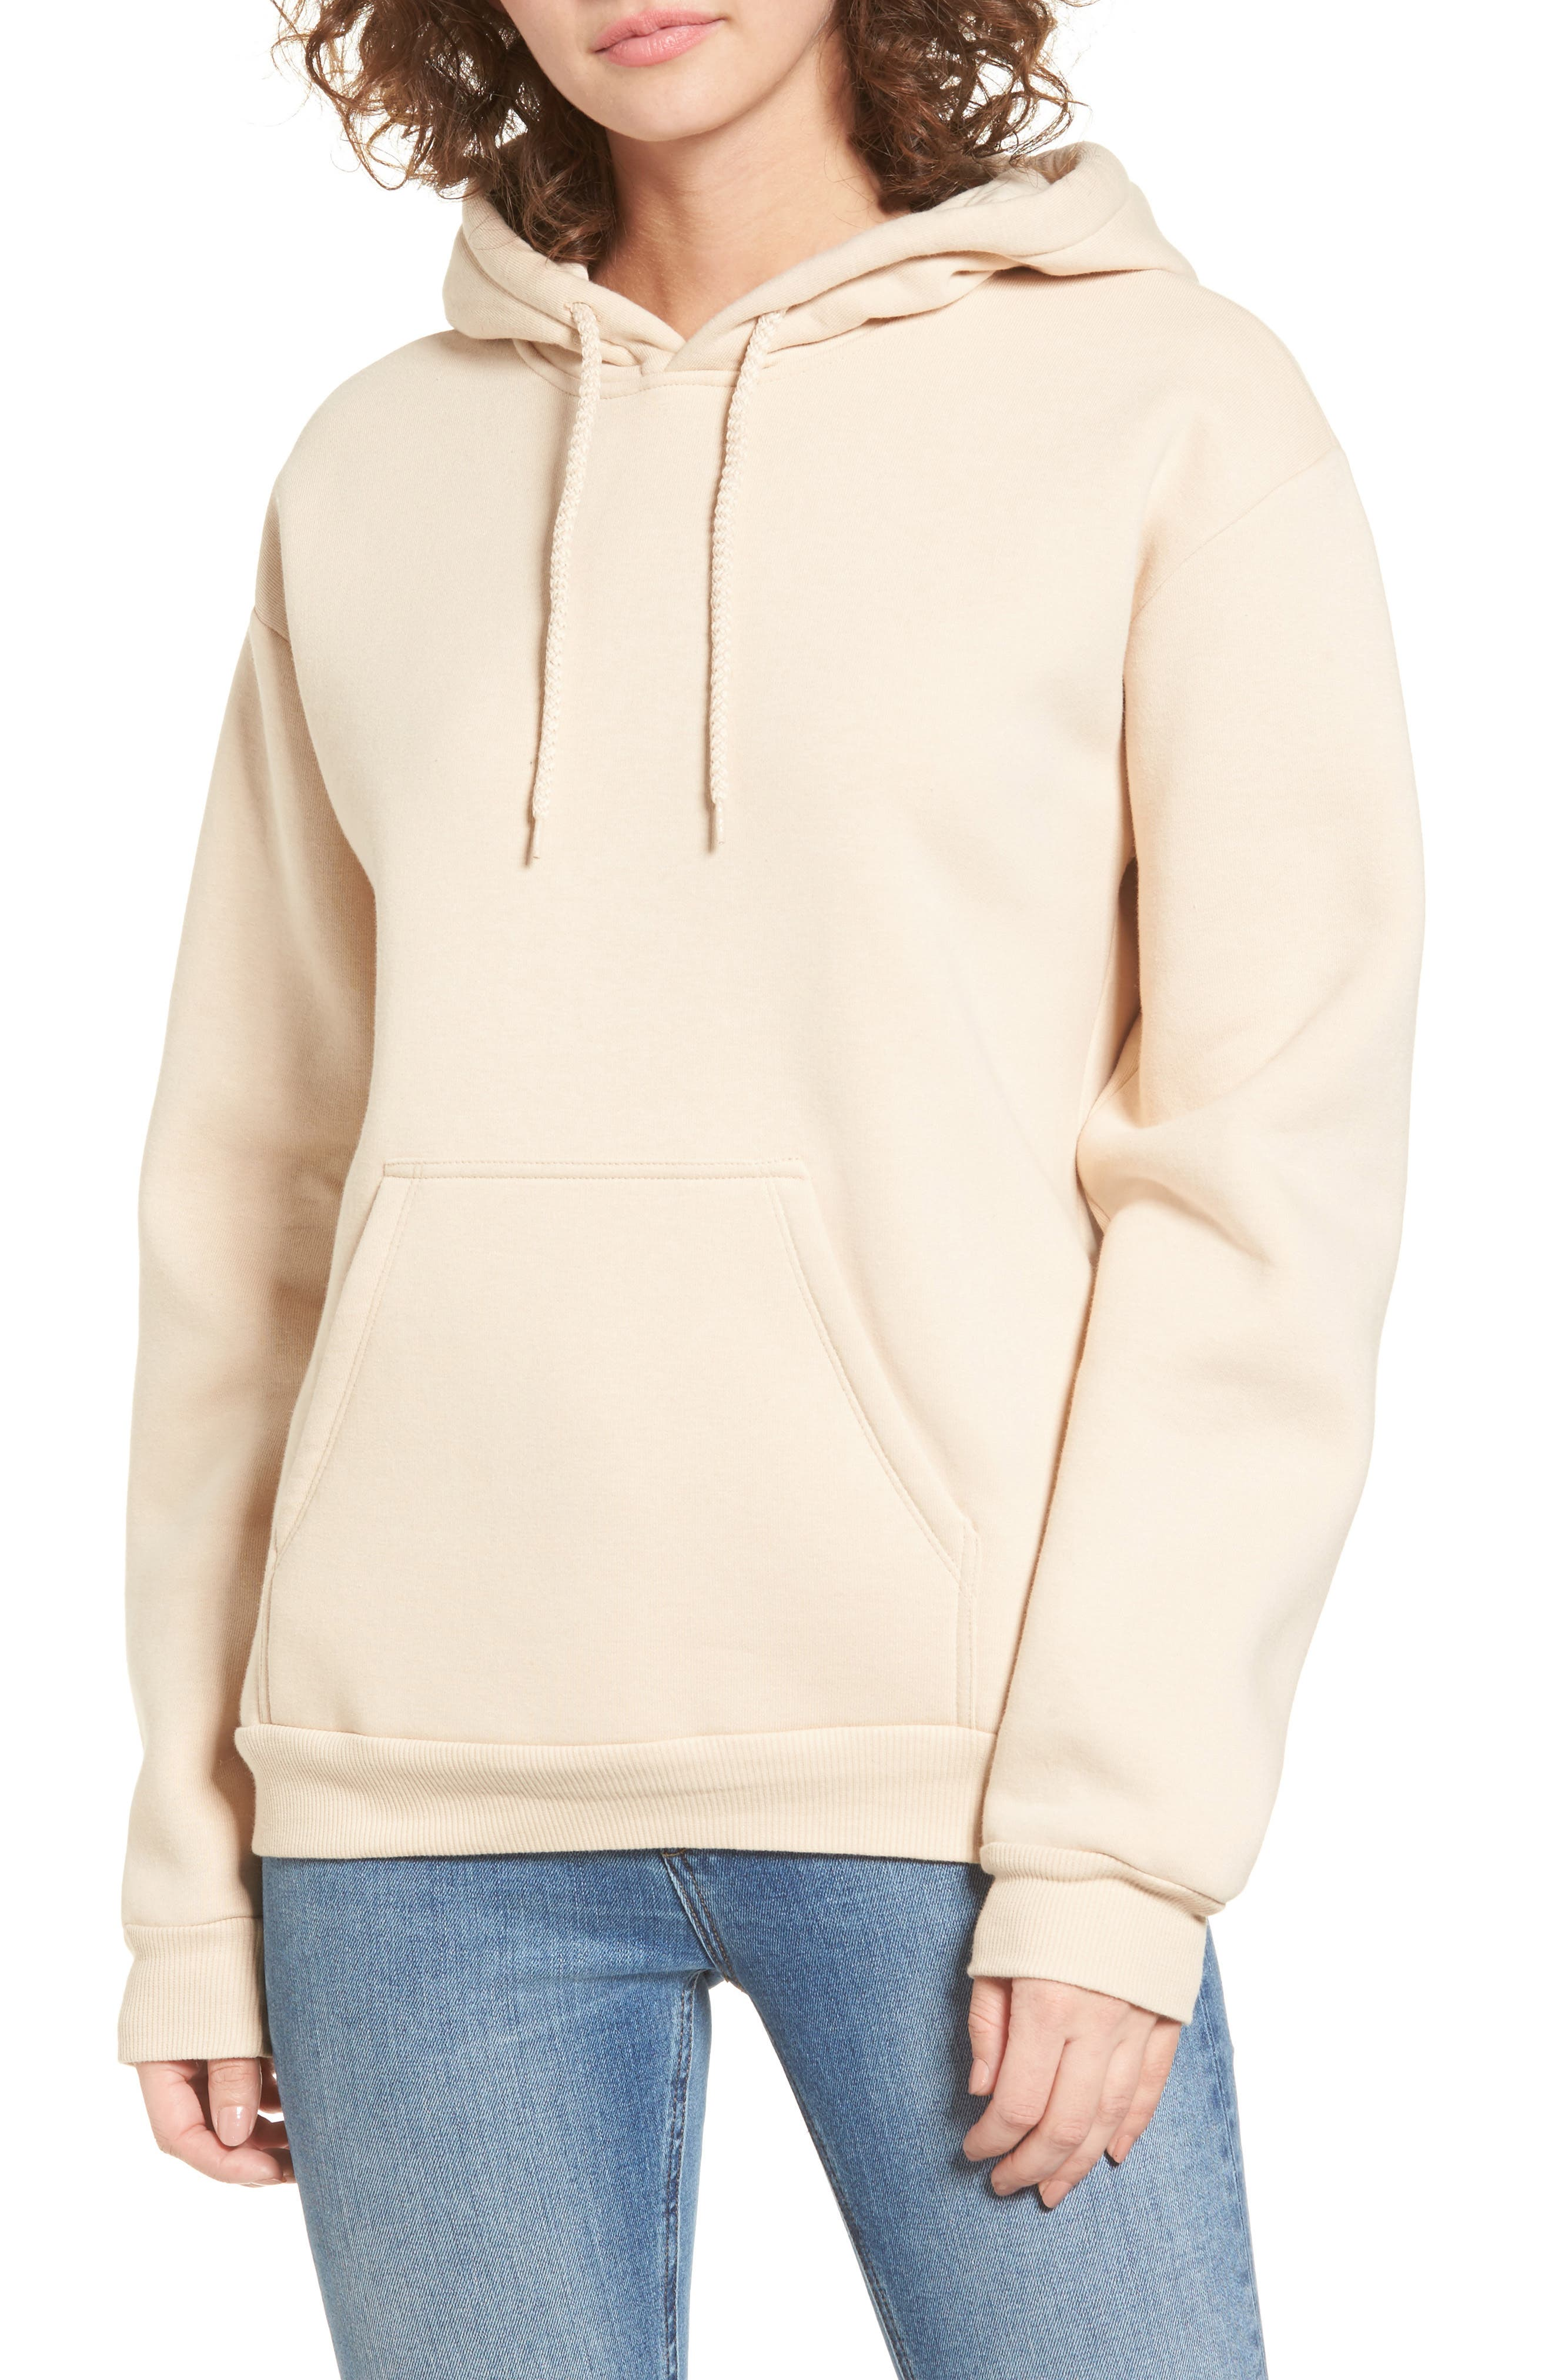 Oversize Hoodie,                             Main thumbnail 1, color,                             250